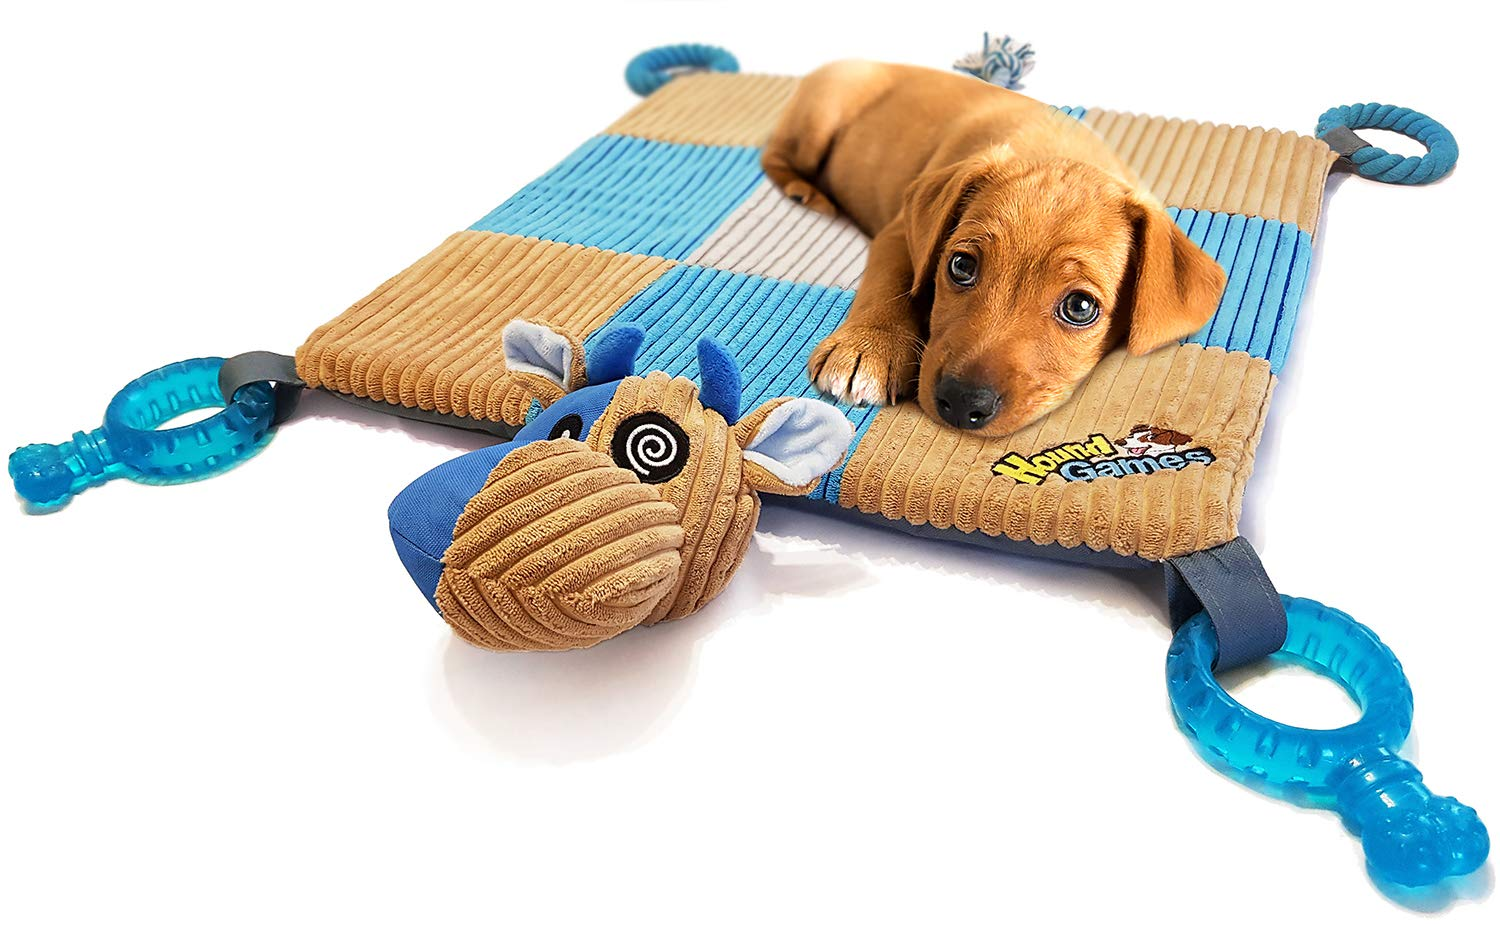 HOUNDGAMES Doggy Play Mat with Puppy Chew Toys, Teething Ropes, Dental Grade Quality, Squeaker Nose, Plush Padded Mat. Designed in The Colors Dogs See Best by HOUNDGAMES